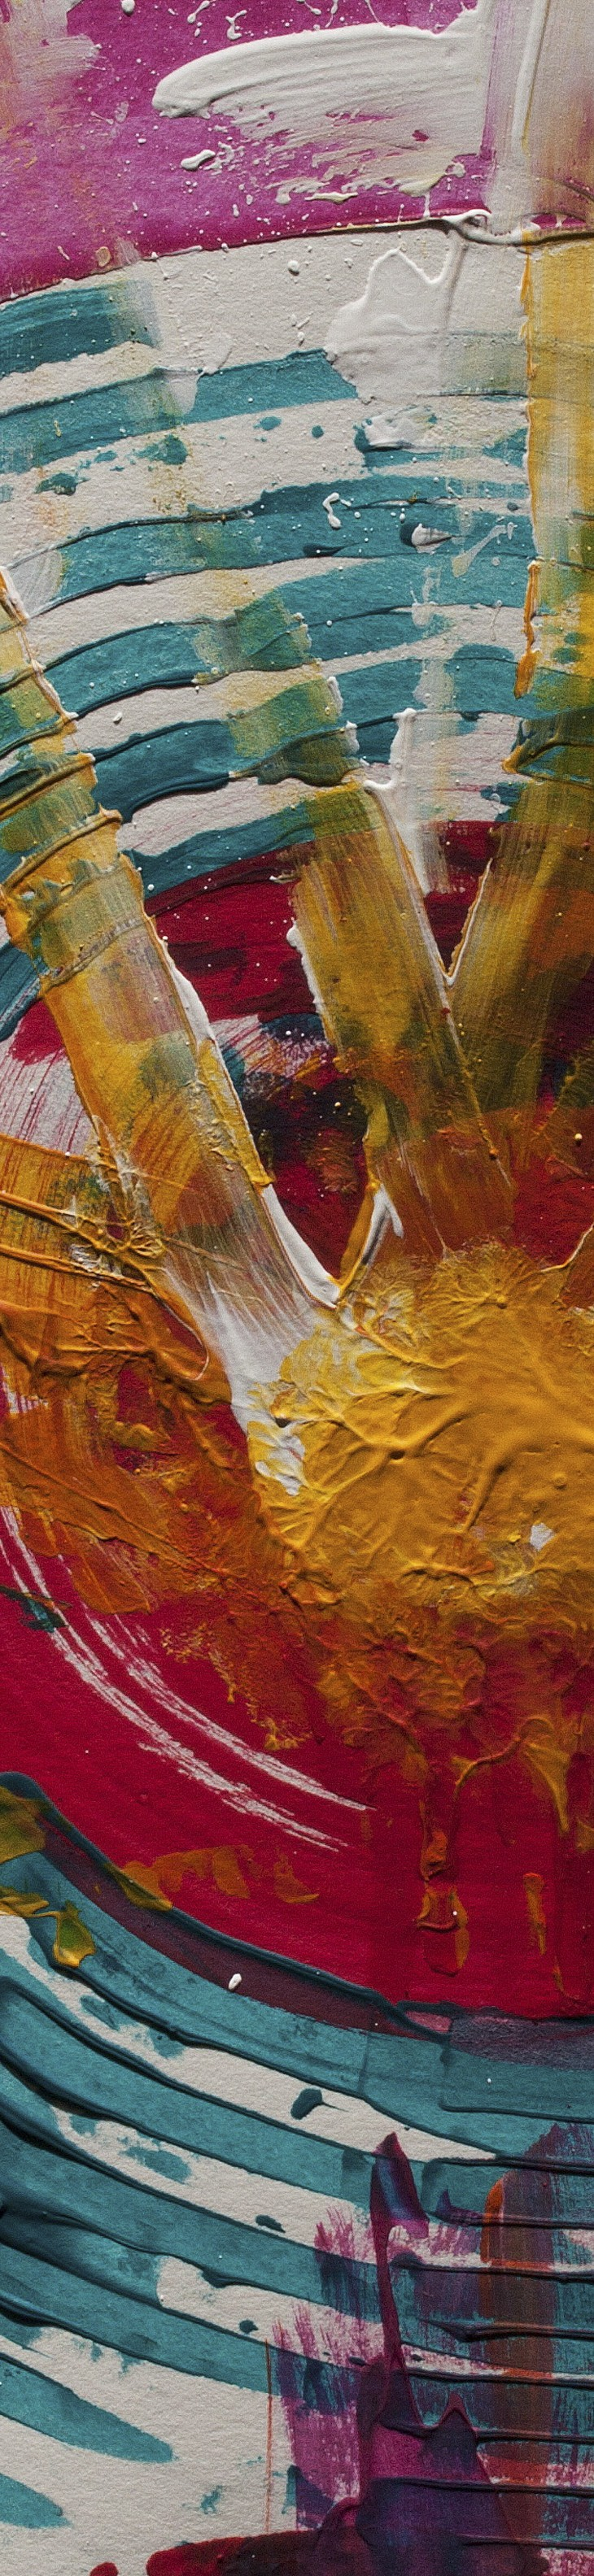 art-therapy-230046image